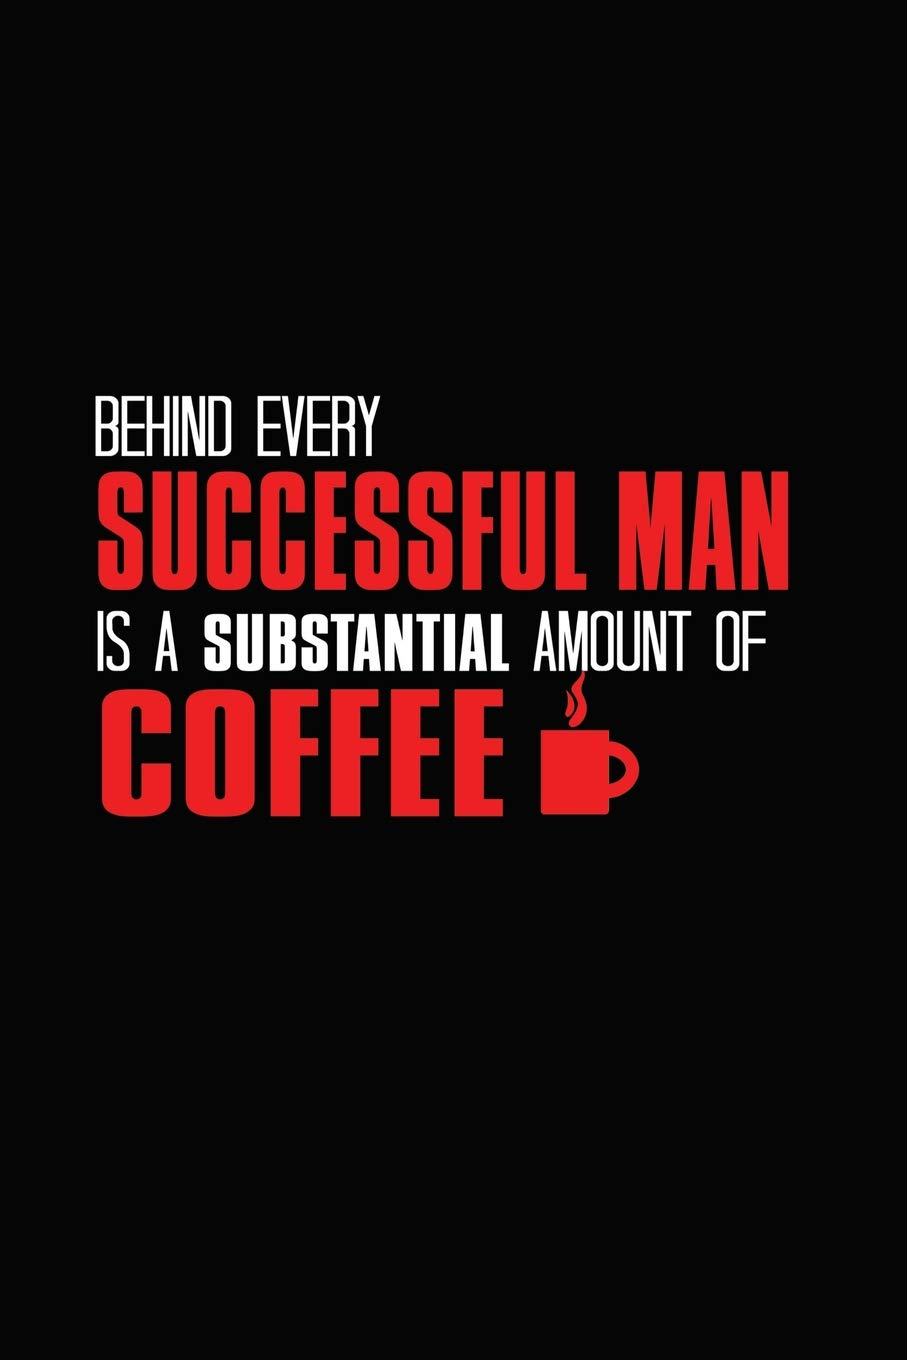 Behind Every Successful Man Is A Substantial Amount Of Coffee